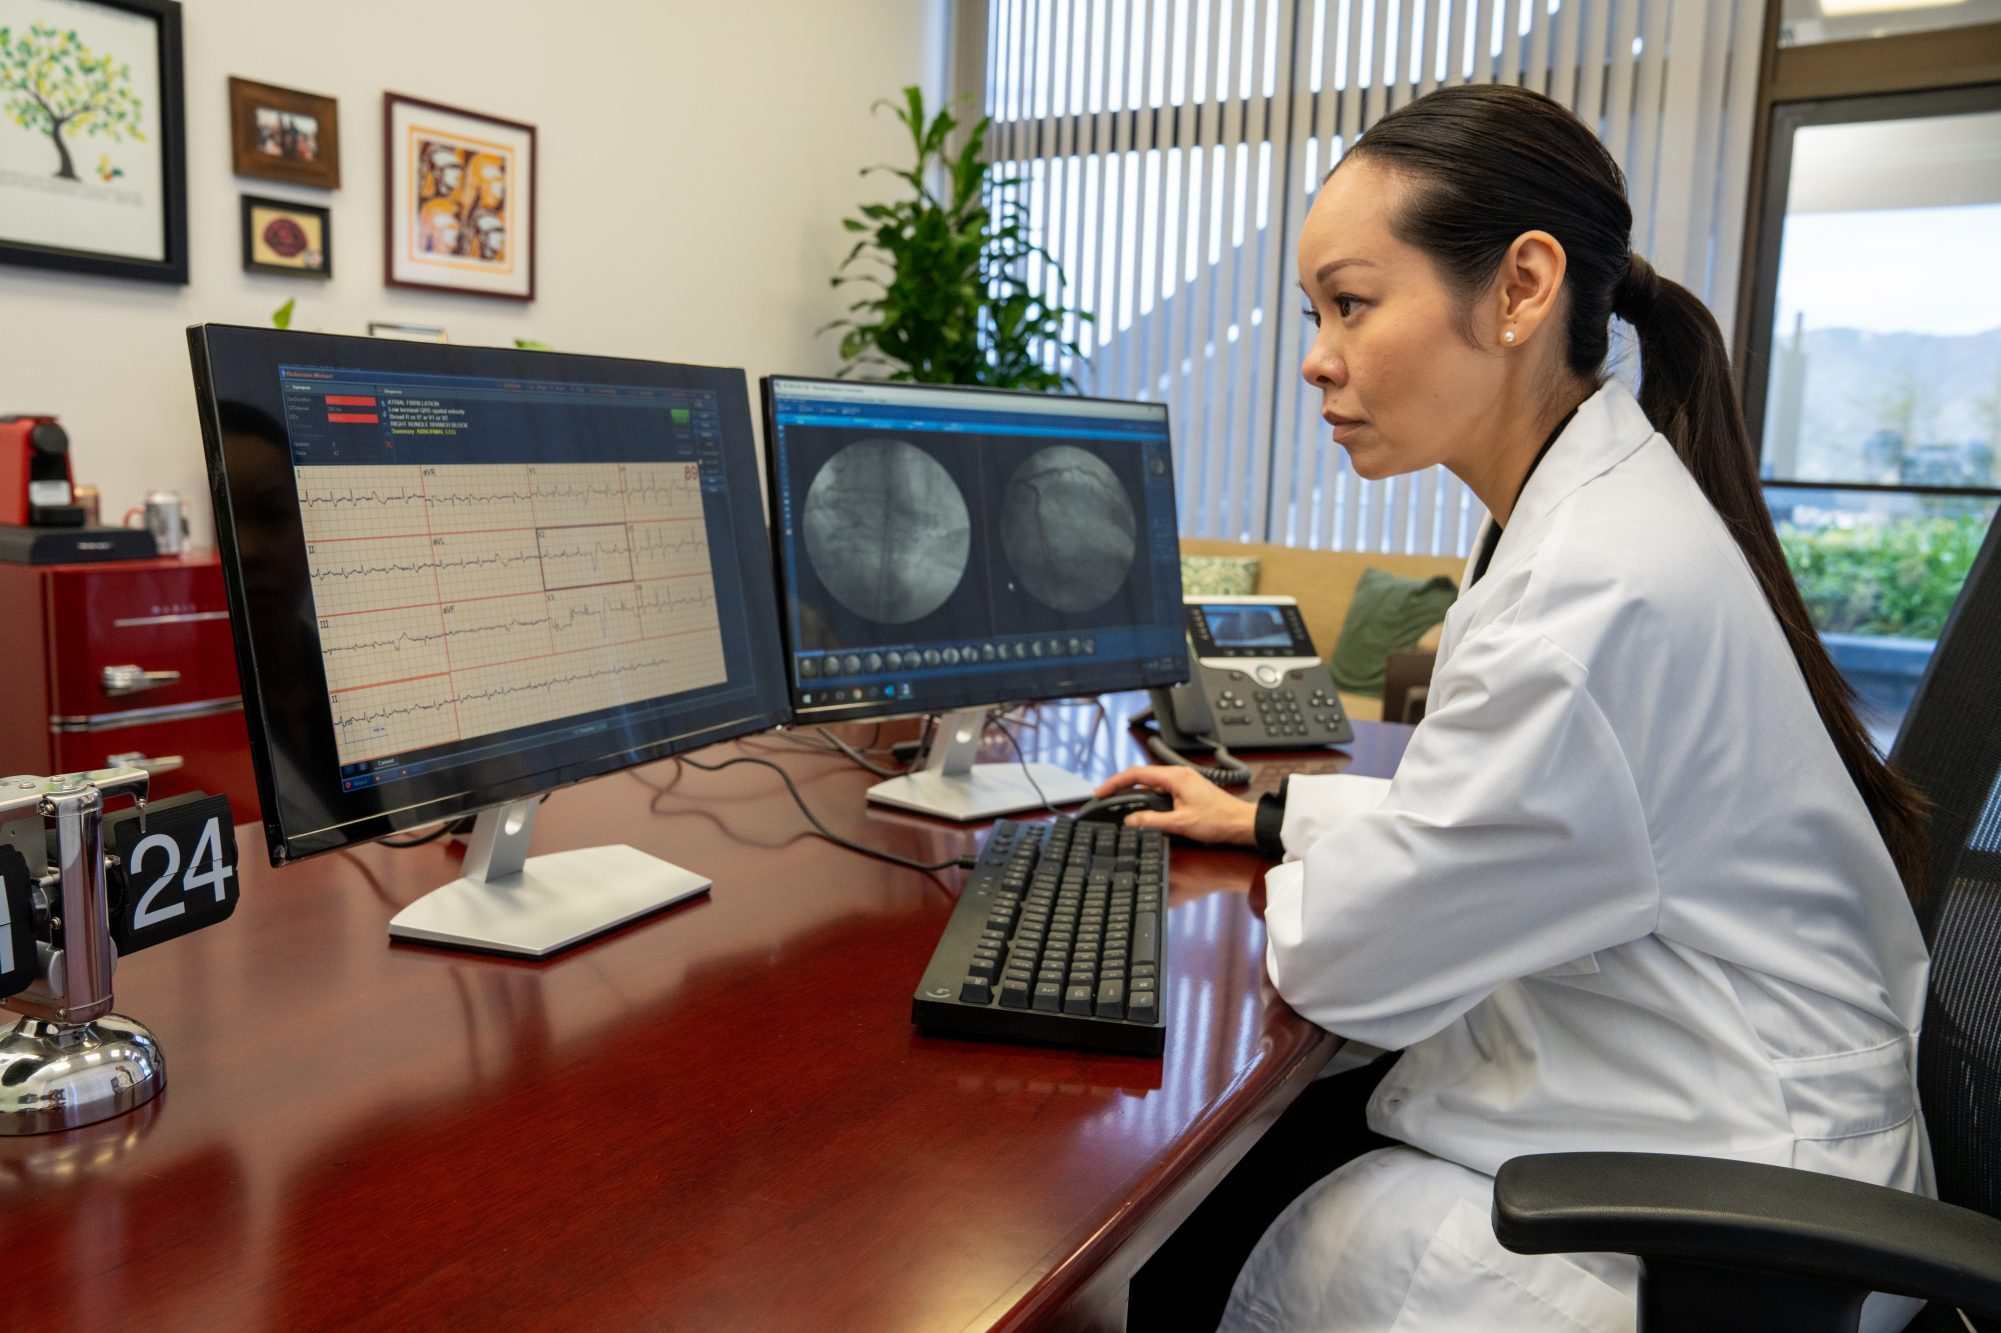 Cardiologist analyzing information on monitor